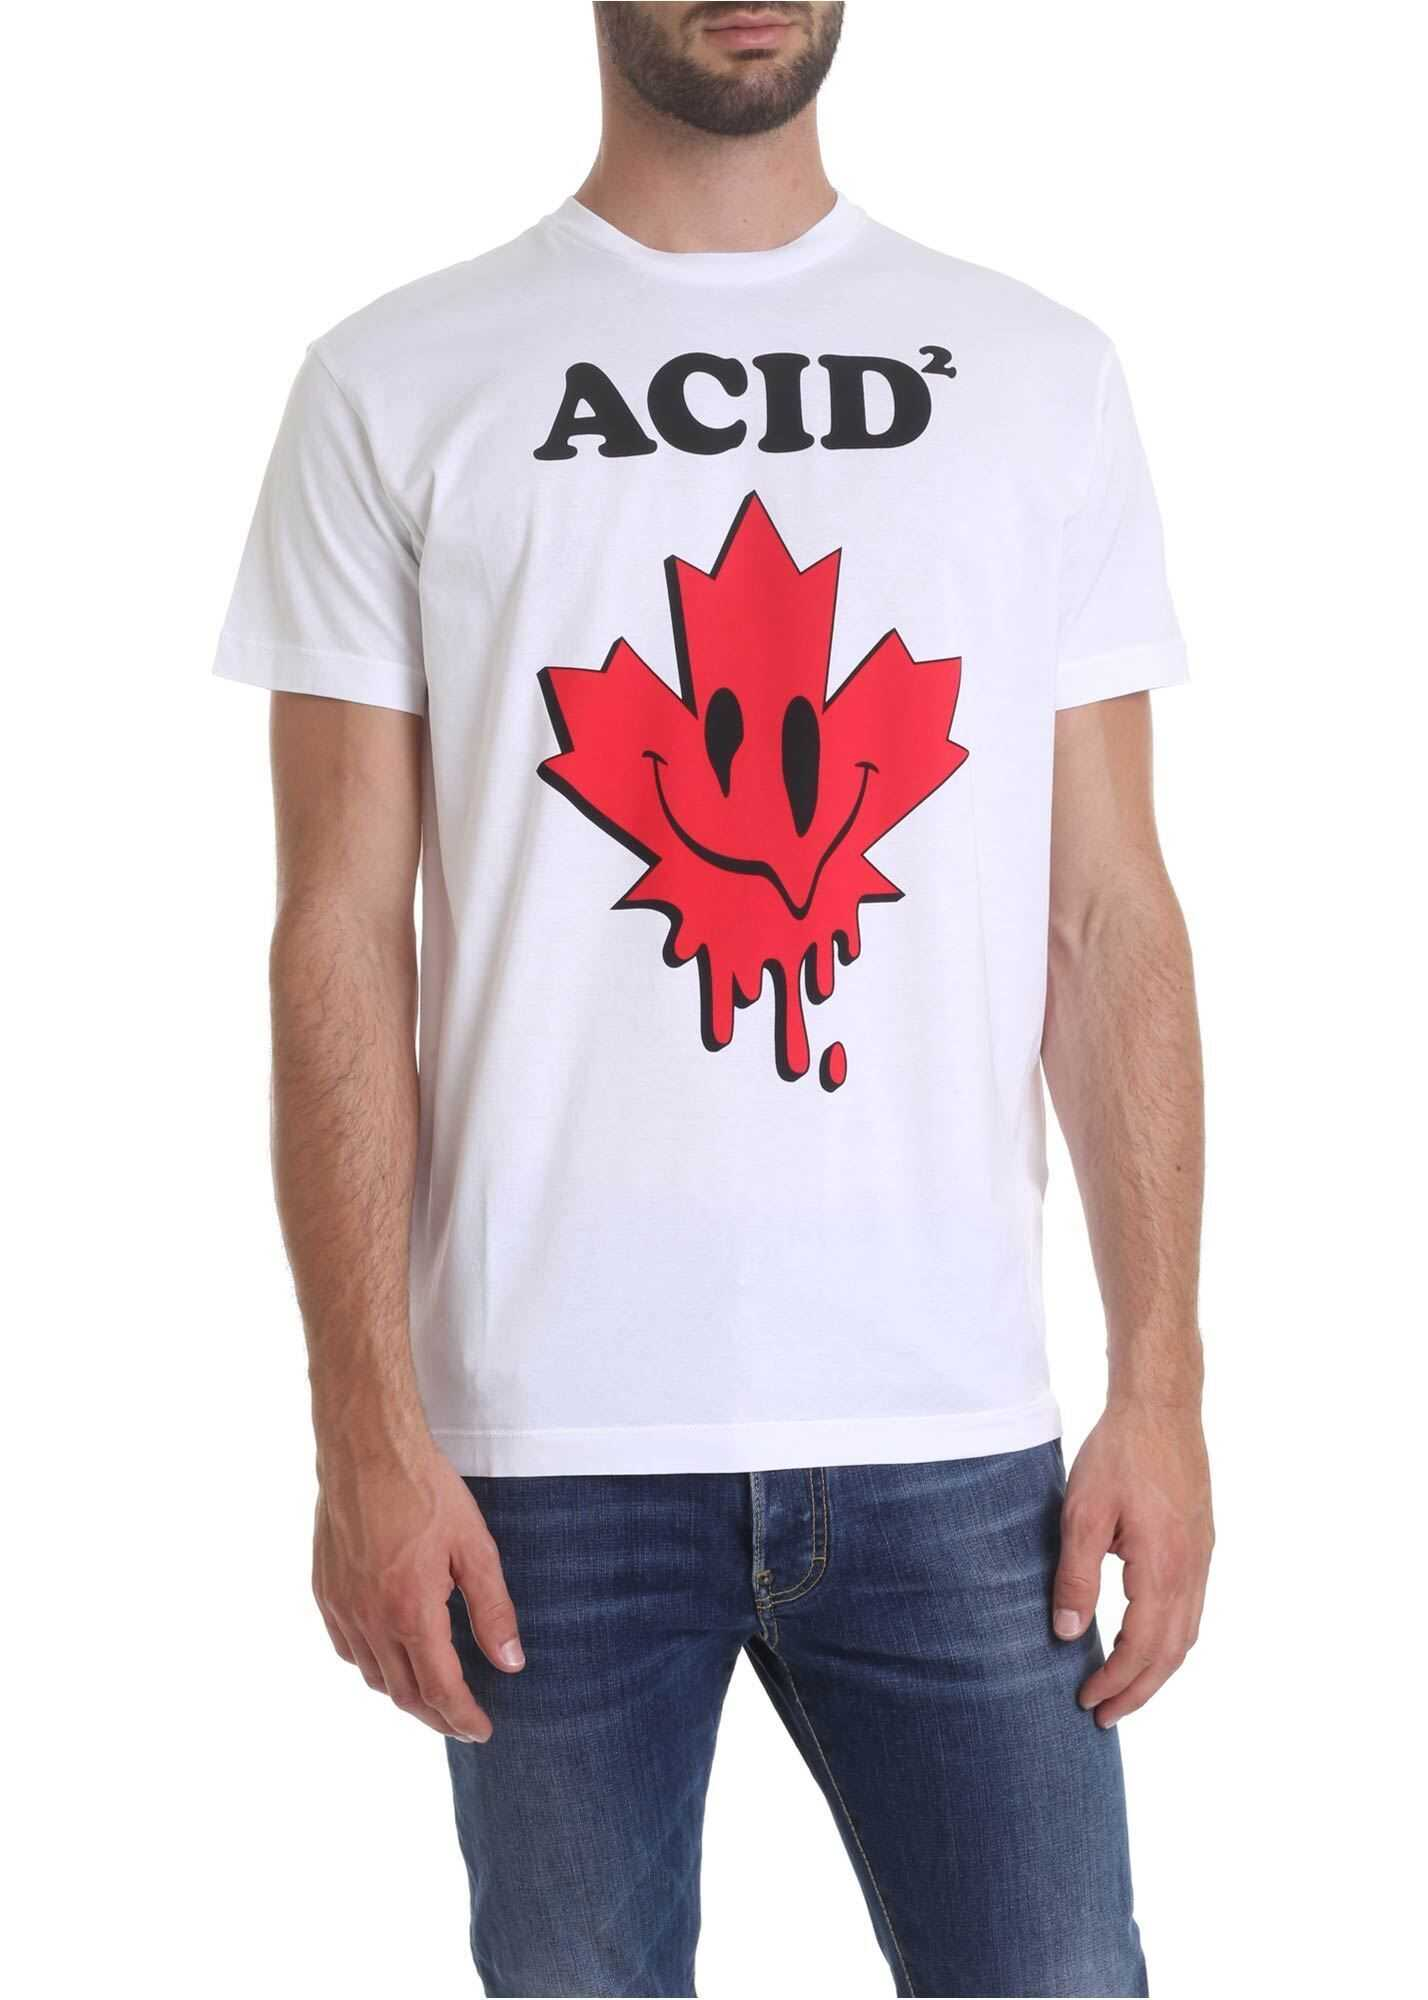 DSQUARED2 Acid Printed T-Shirt In White White